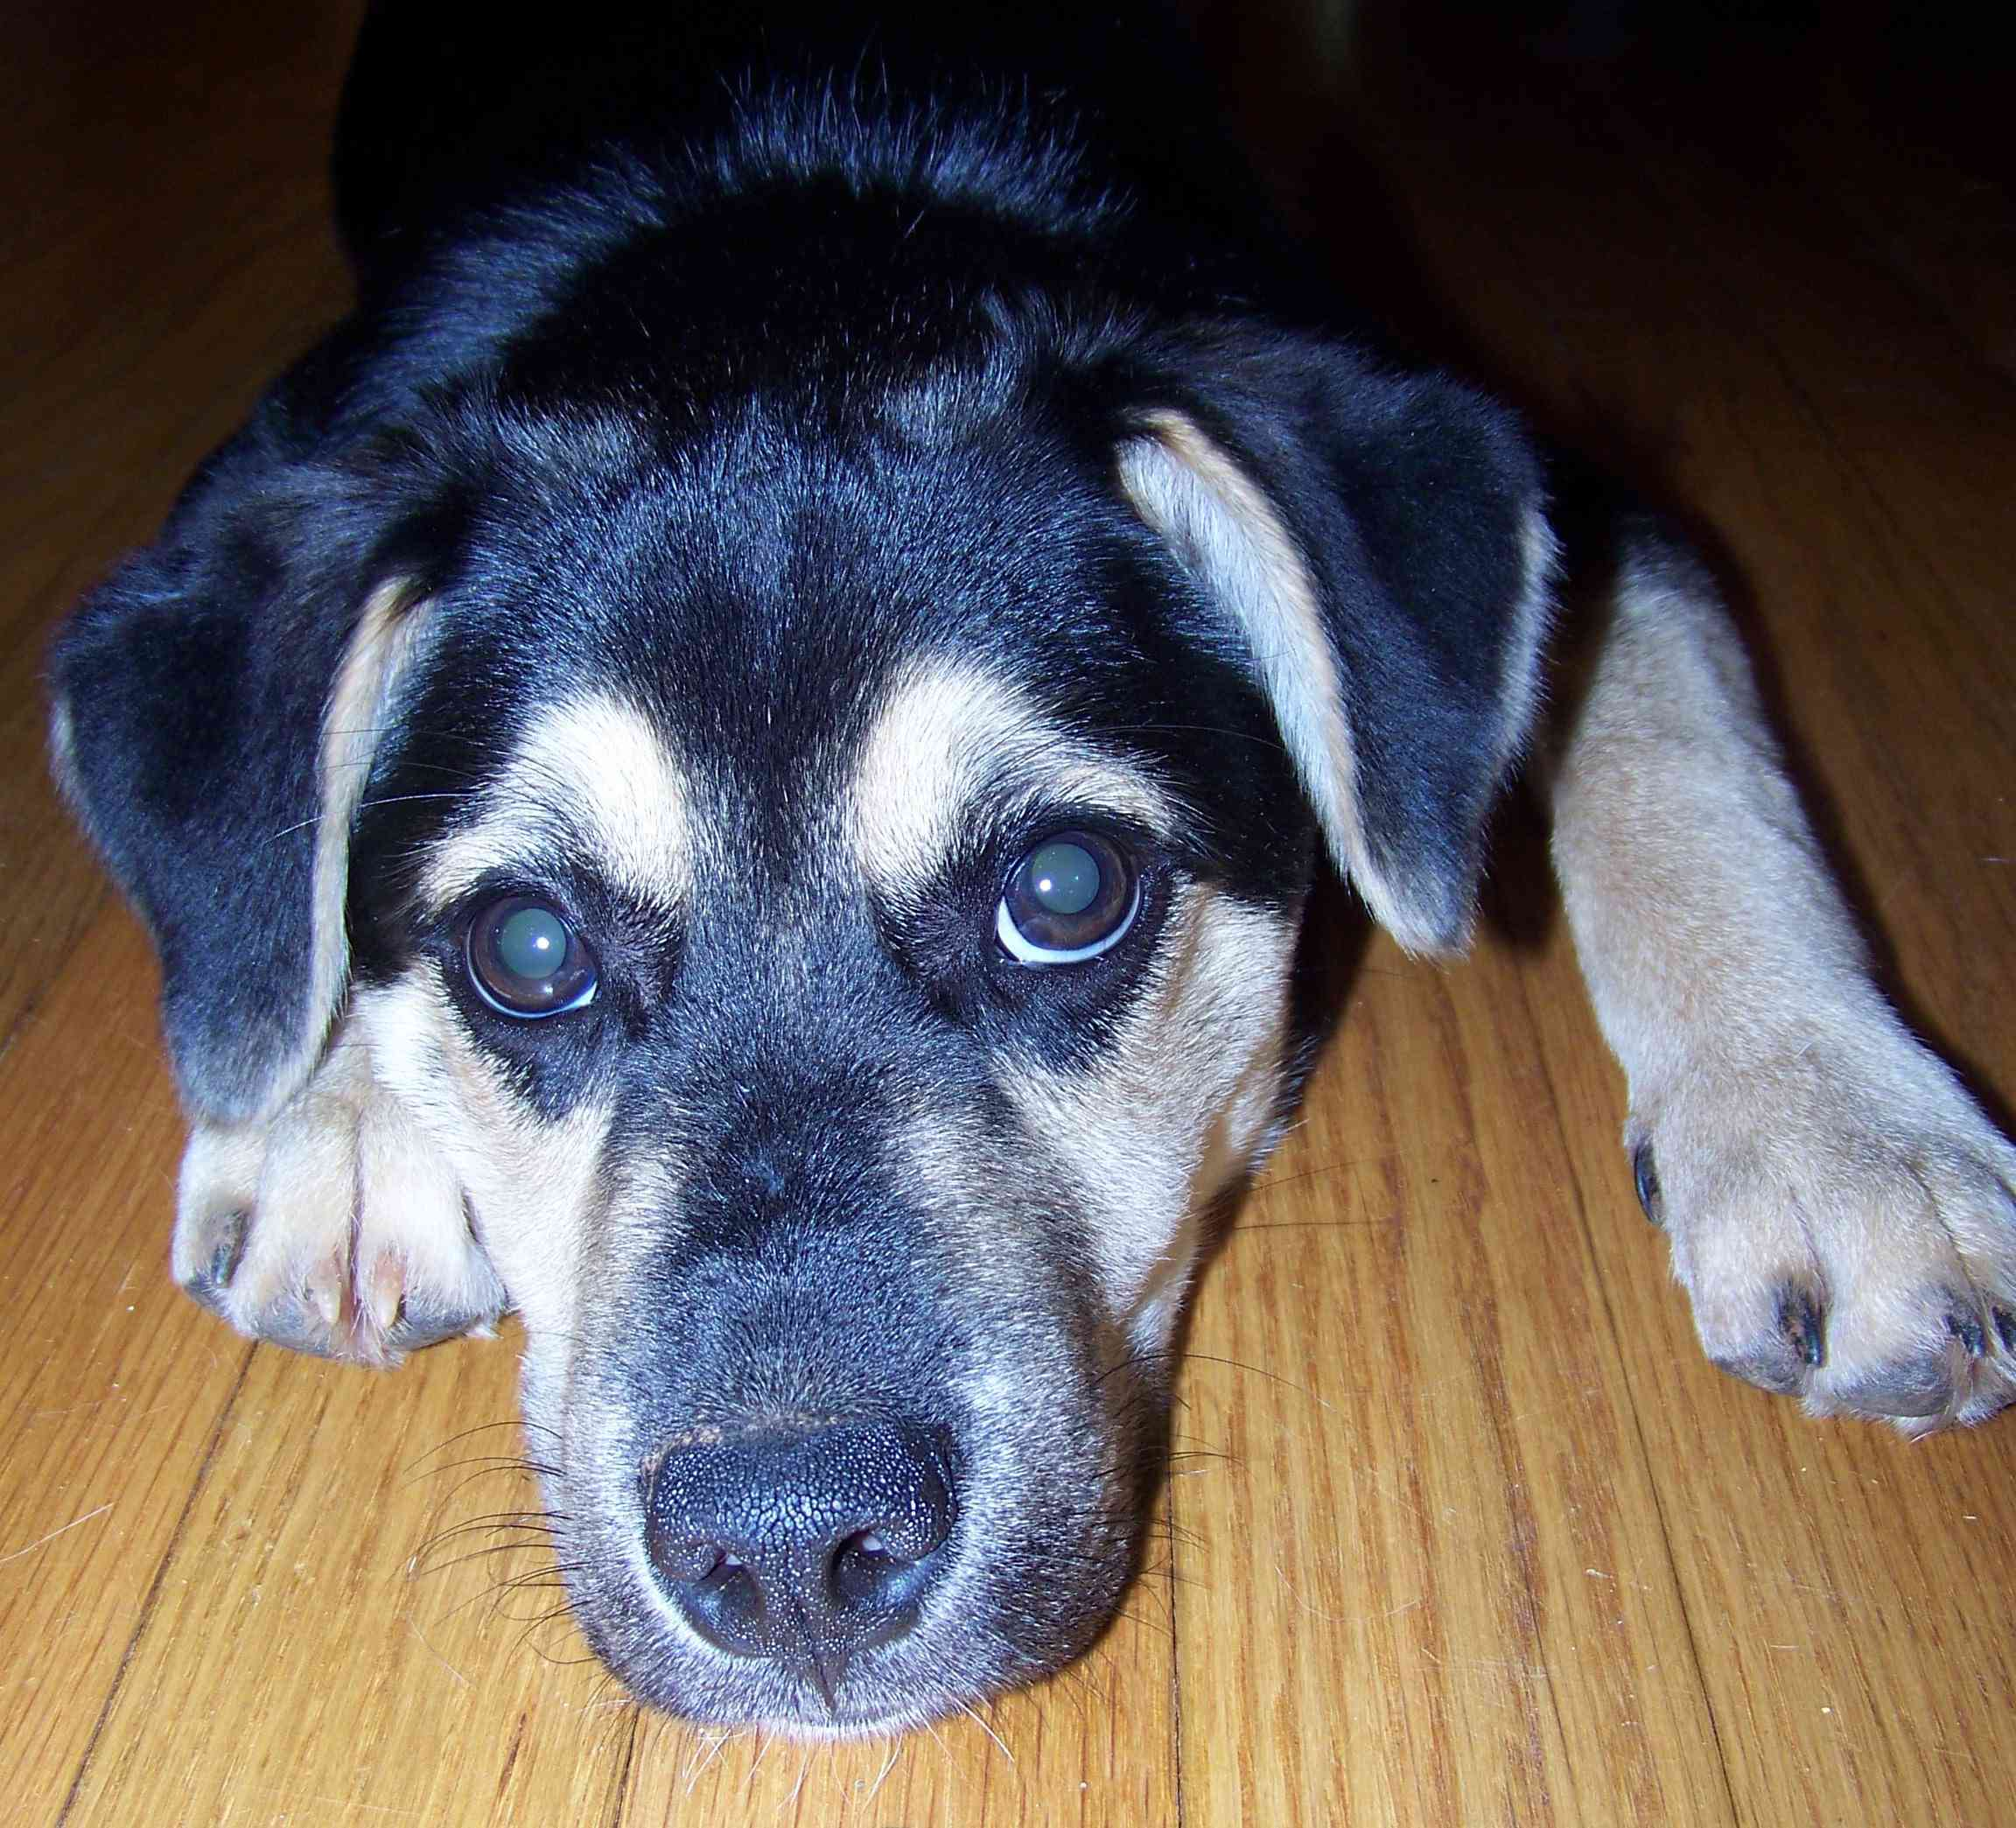 Otis, a mixed-breed rescue dog, as a puppy